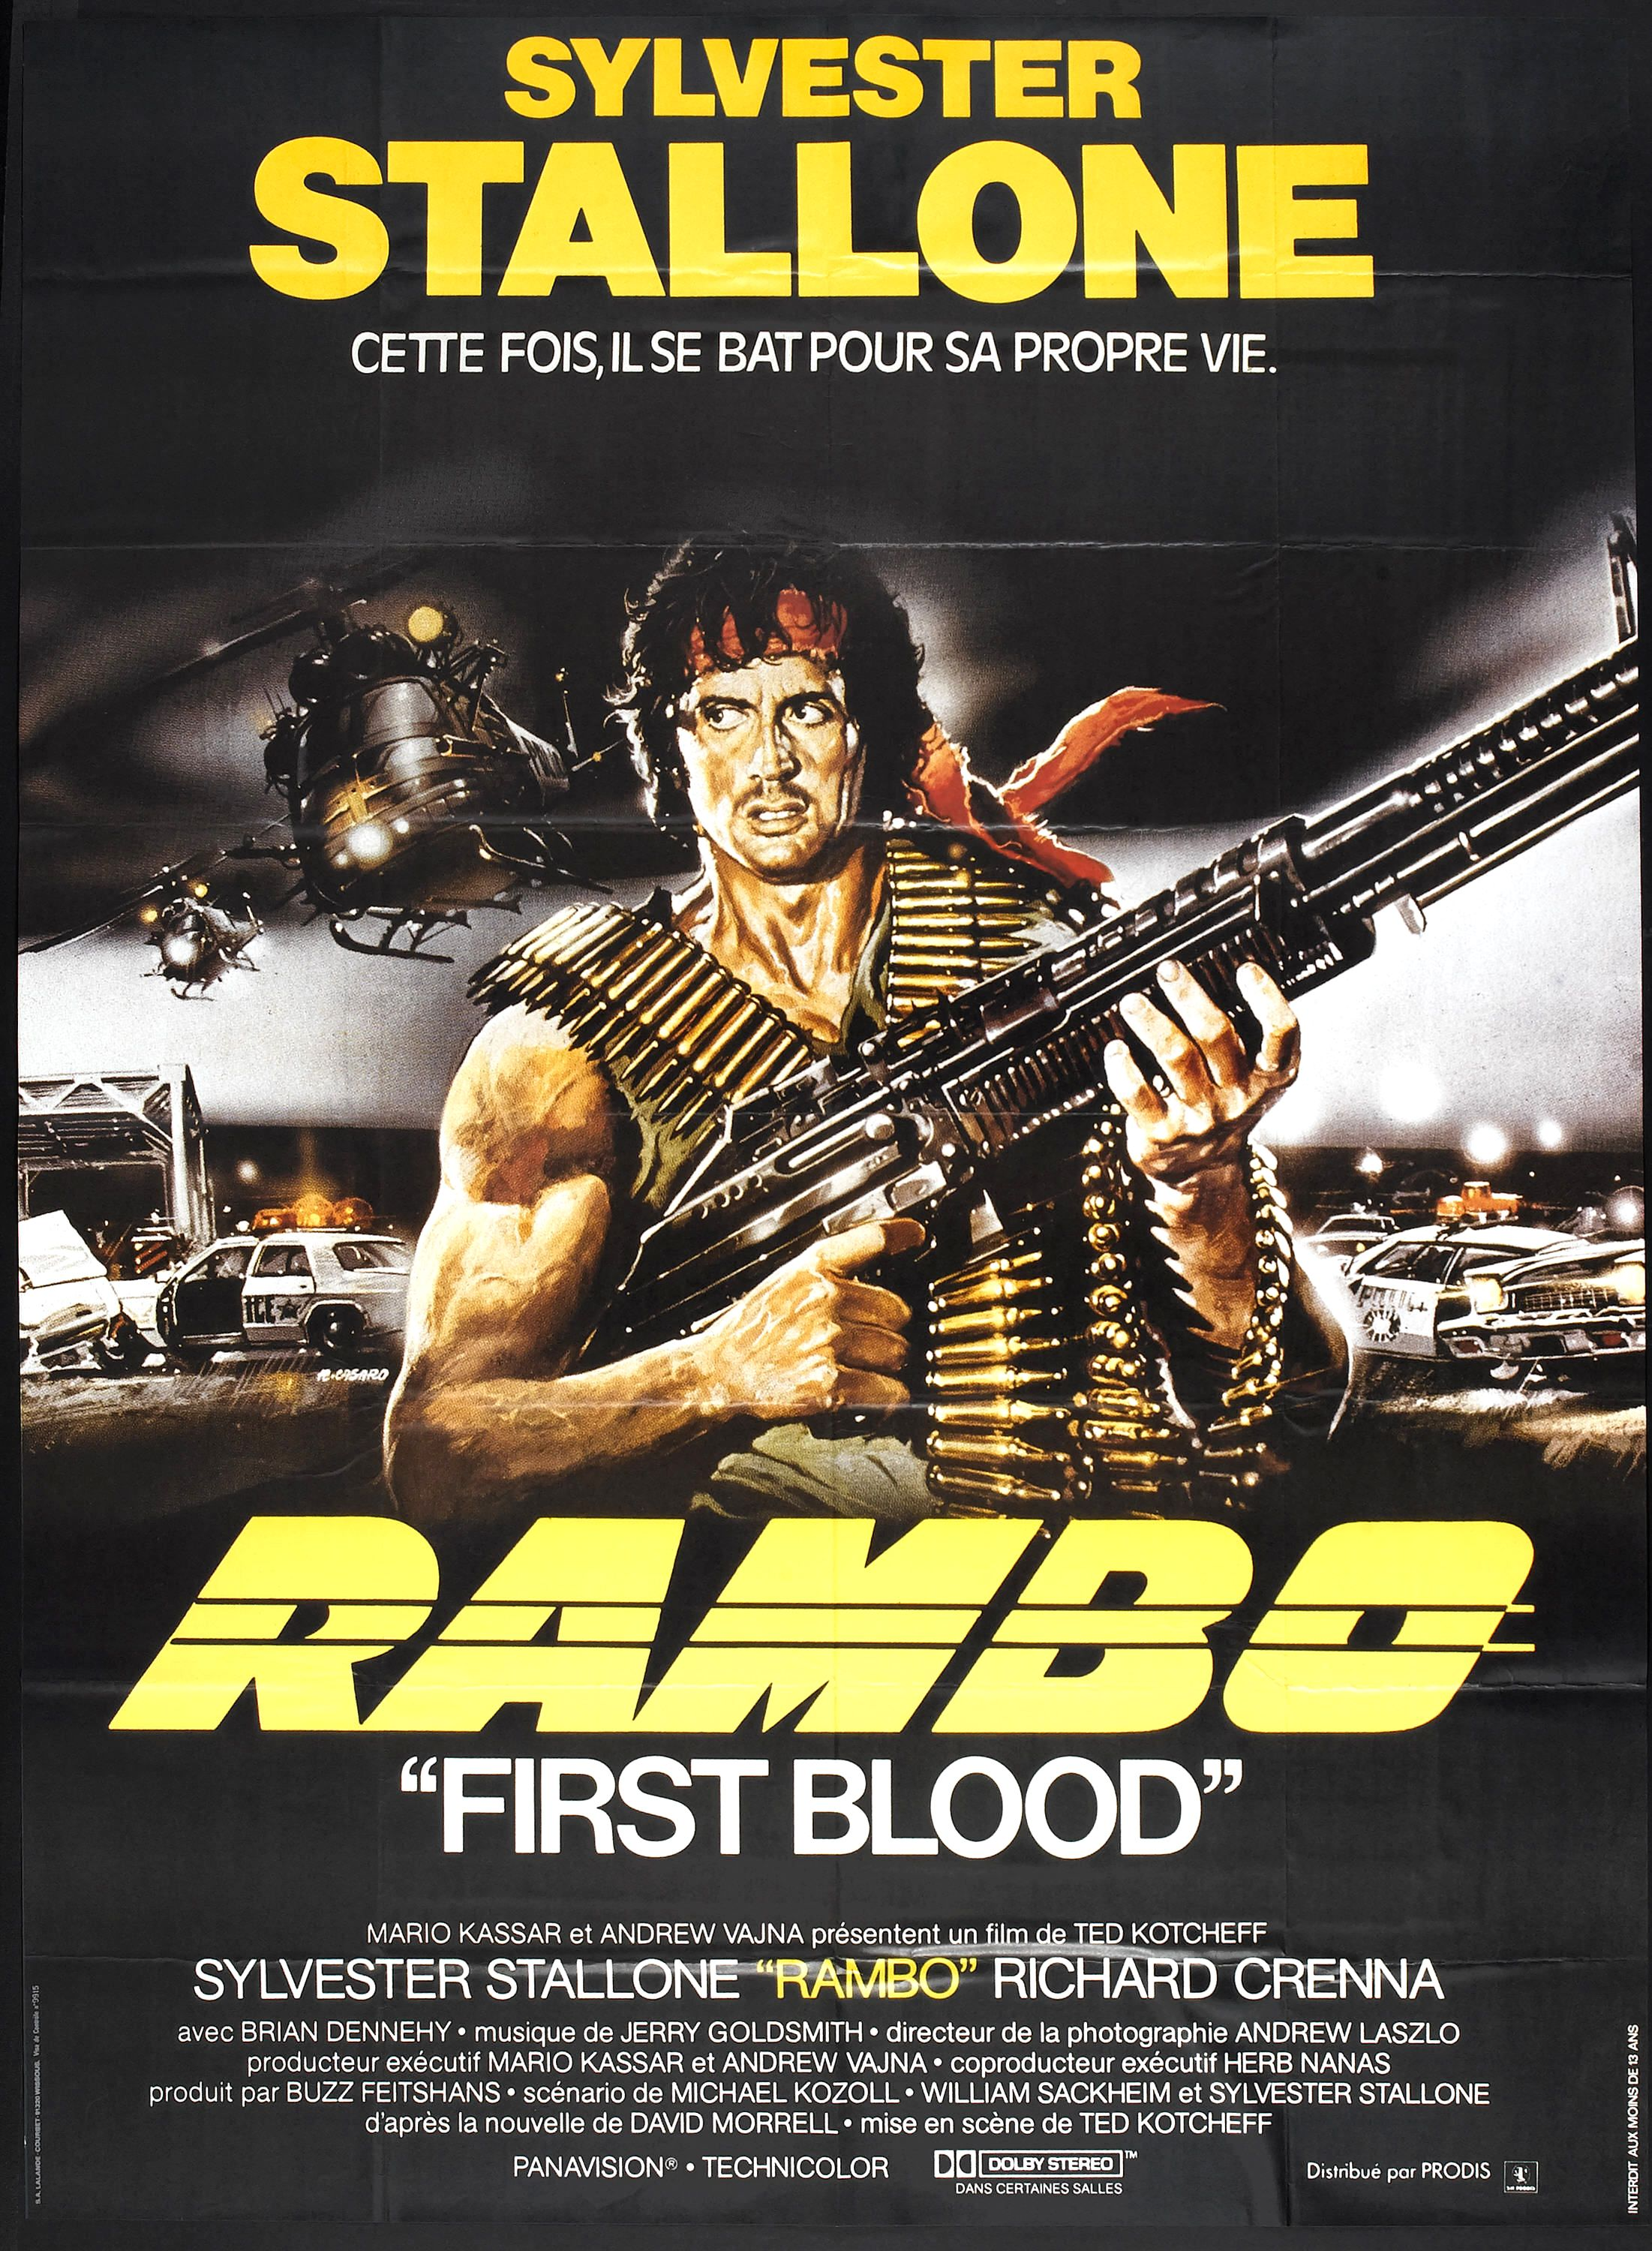 First Blood 1982 Rambo Sylvester Stallone movie poster print 4